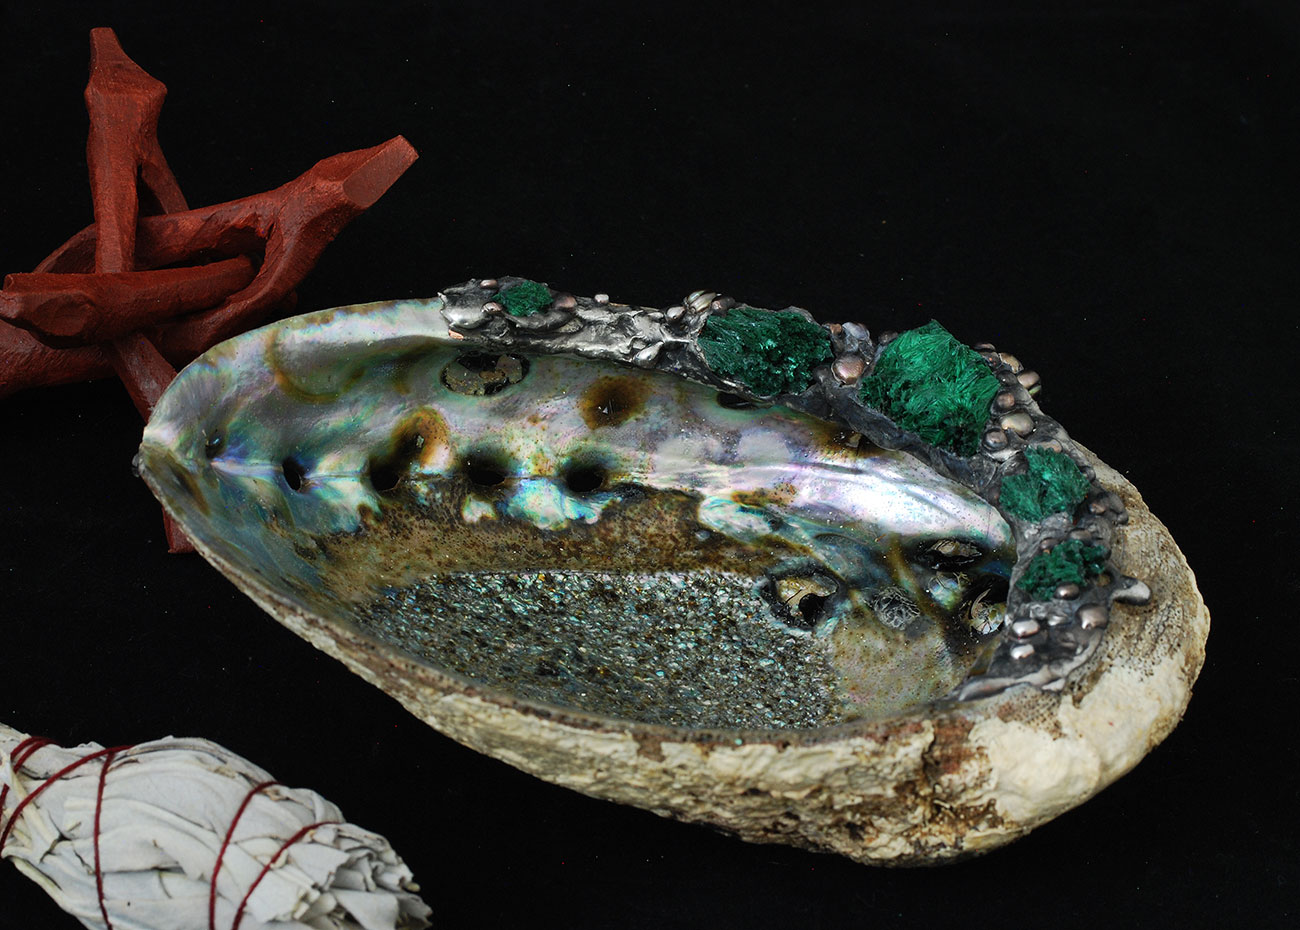 Stunning 6inch plus(16cm) wide Abalone Smudge bowl.